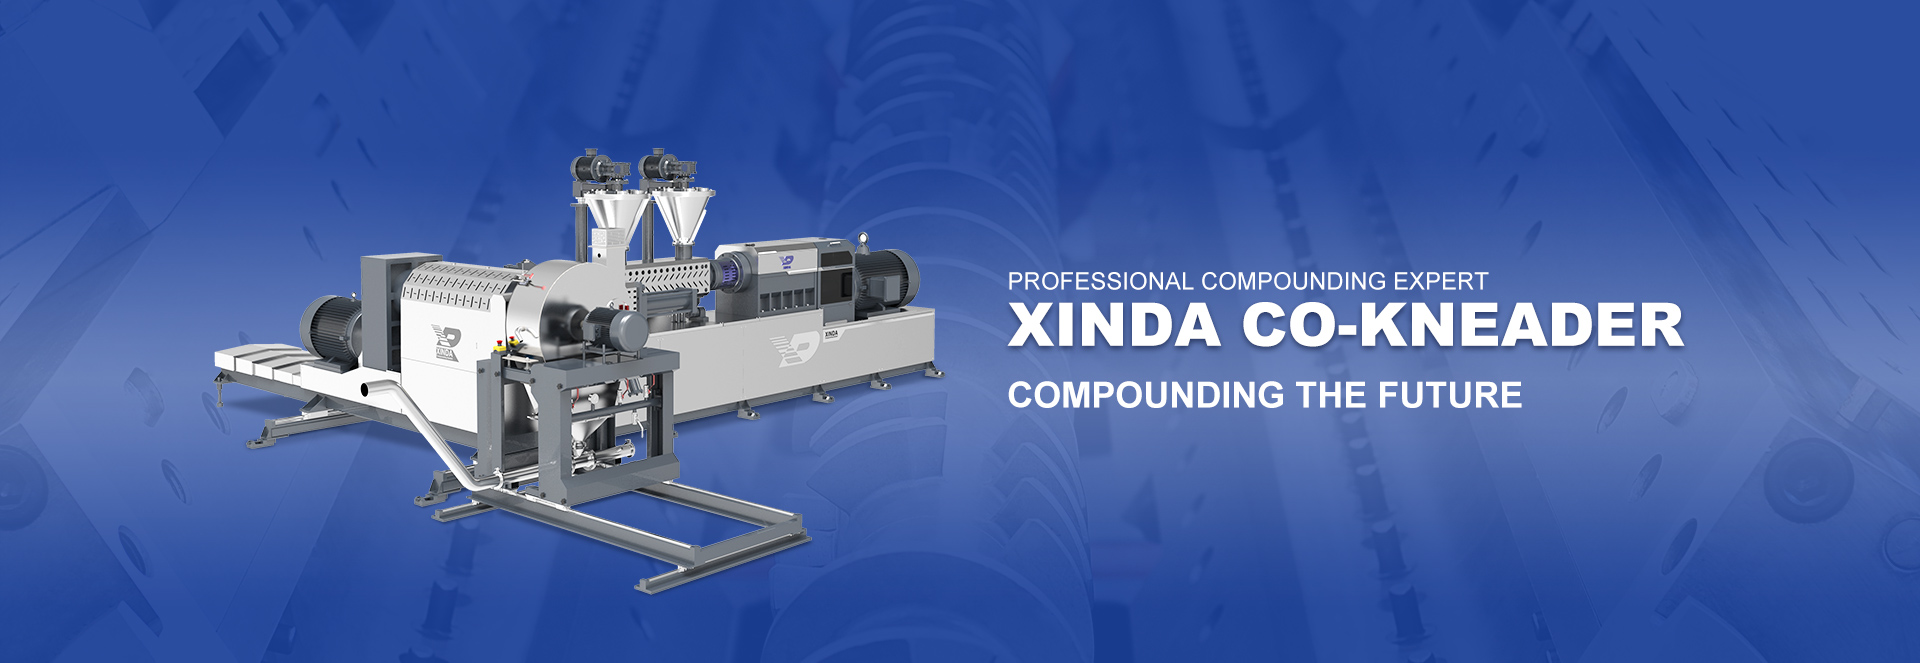 XINDA CO-Kneader